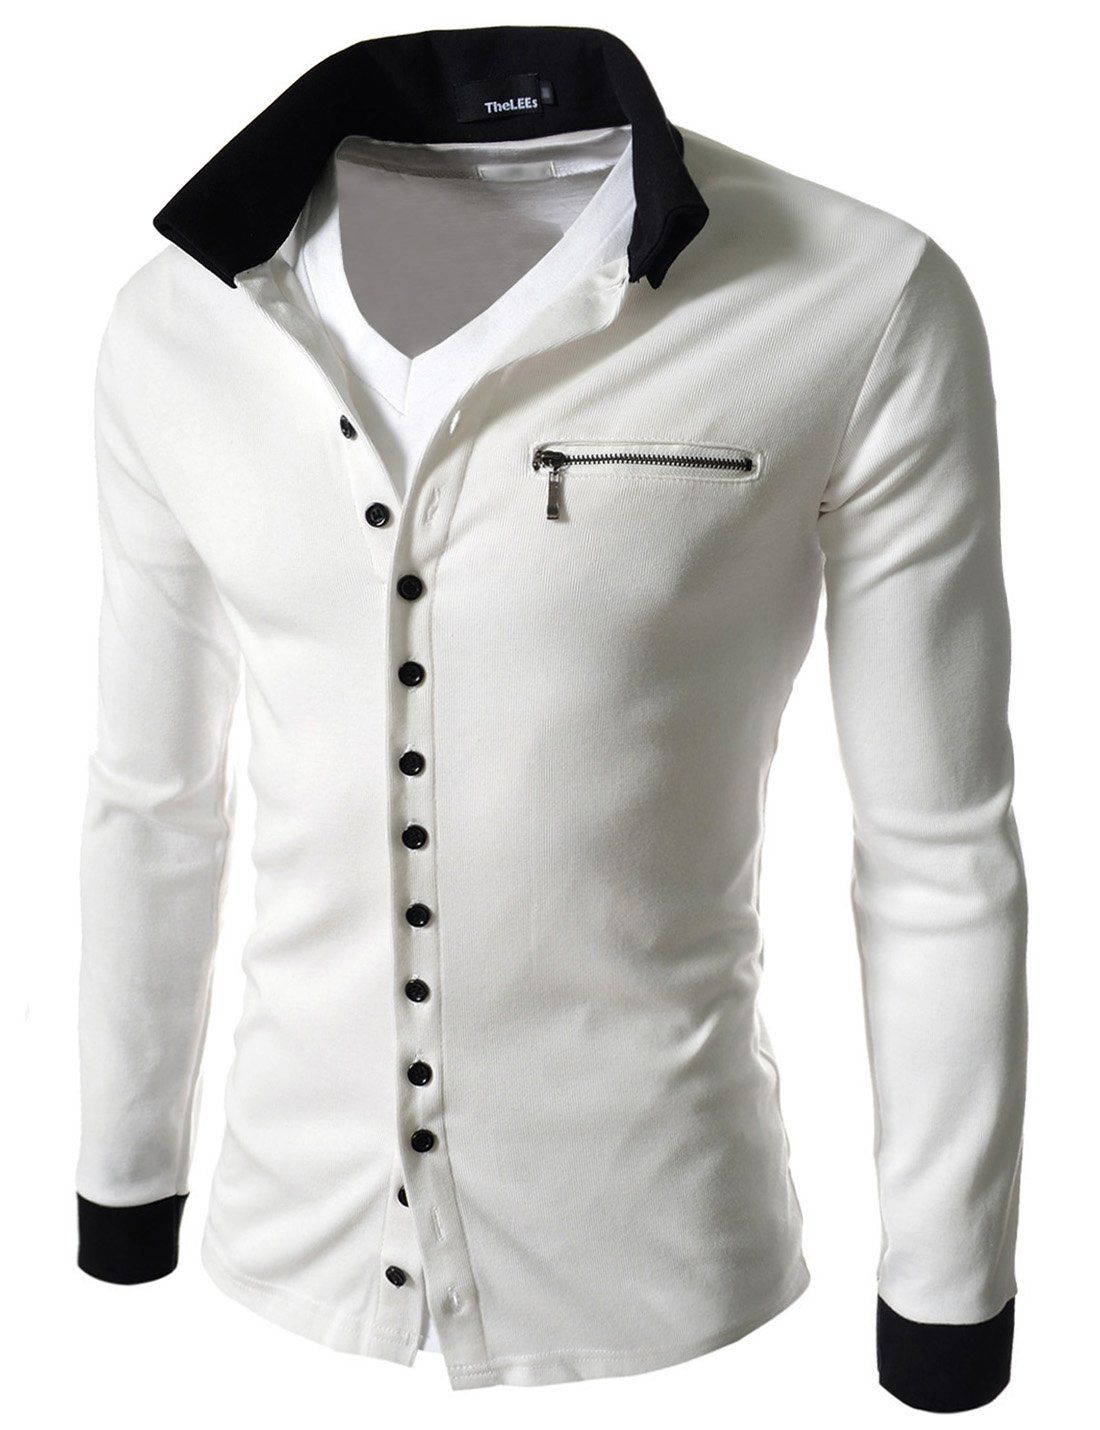 The Lees Mens Casual Slim Fit 2 Tone Button Cardigan at Amazon Men's Clothing store: The Lees Clothing. Size Medium (US Small). http://www.amazon.com/gp/product/B0098V4O0E?ie=UTF8&camp=1789&creativeASIN=B0098V4O0E&linkCode=xm2&tag=i0d43-20